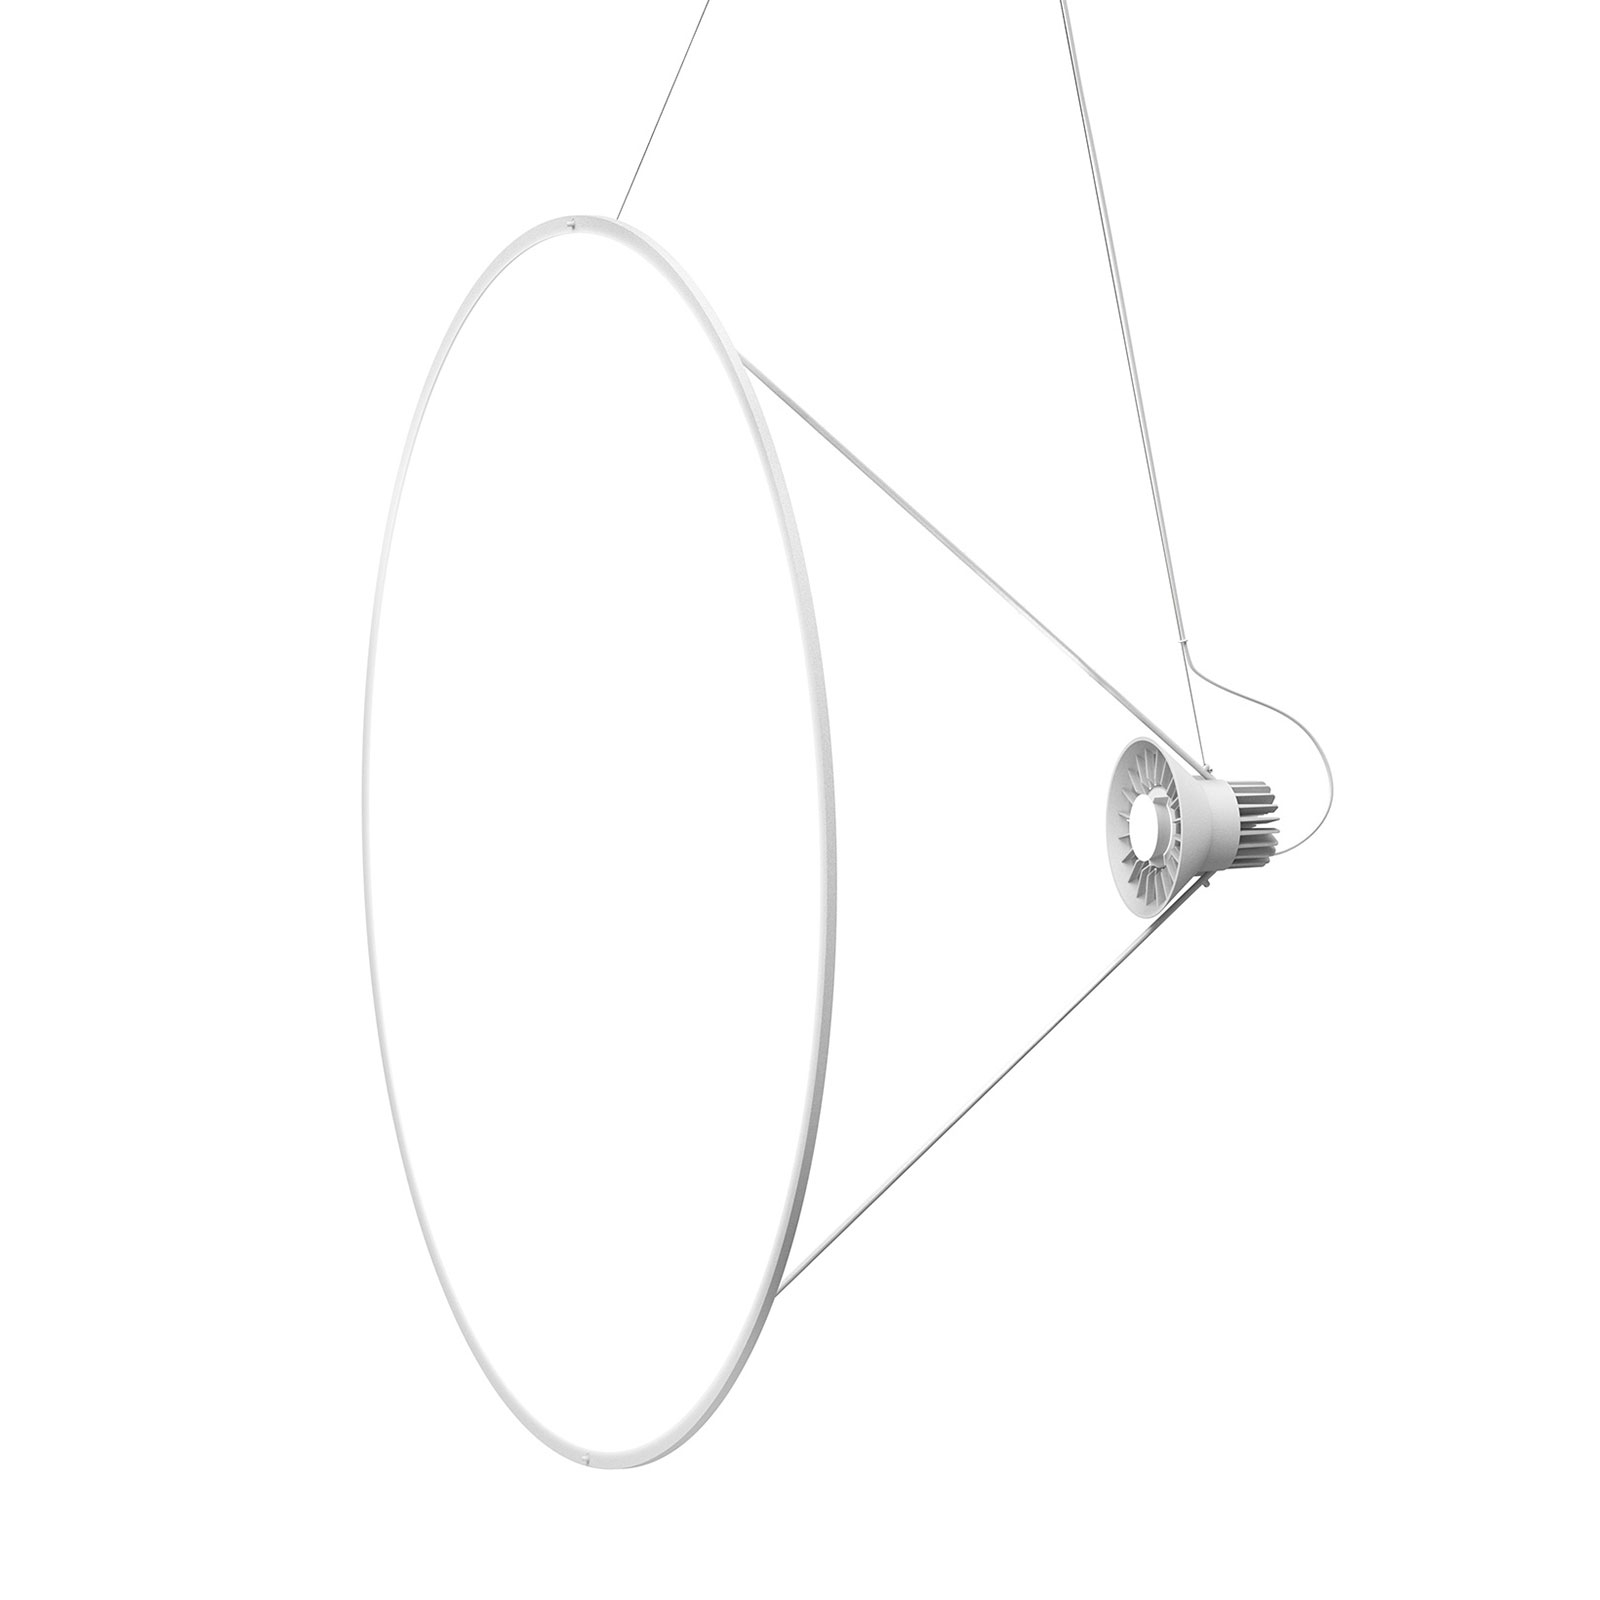 Luceplan Amisol suspension LED Ø 110cm blanc opale